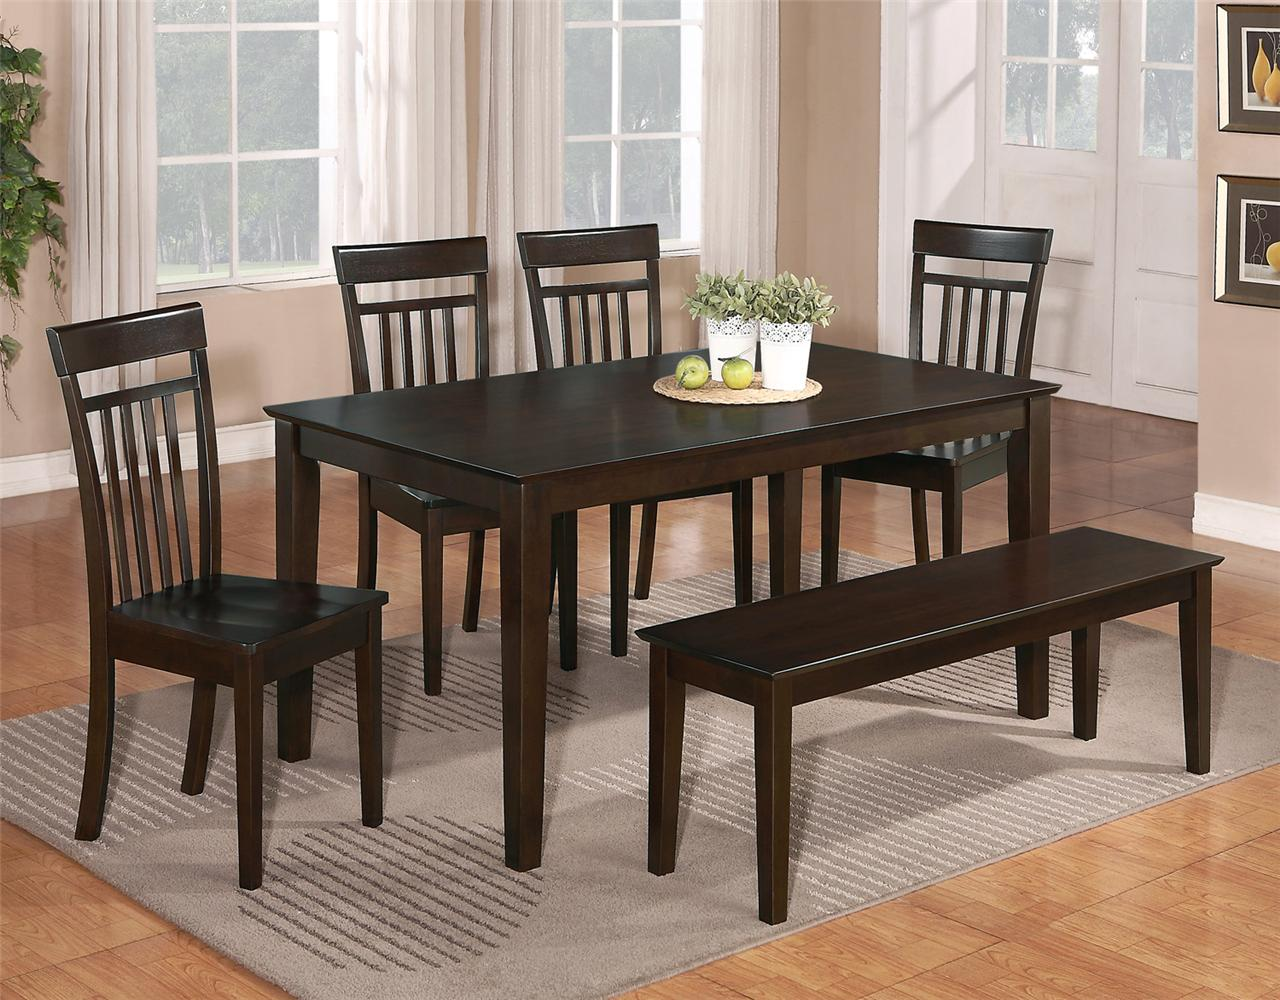 6 pc dinette kitchen dining room set table w 4 wood chair and 1 bench cappuccino ebay Breakfast table with bench